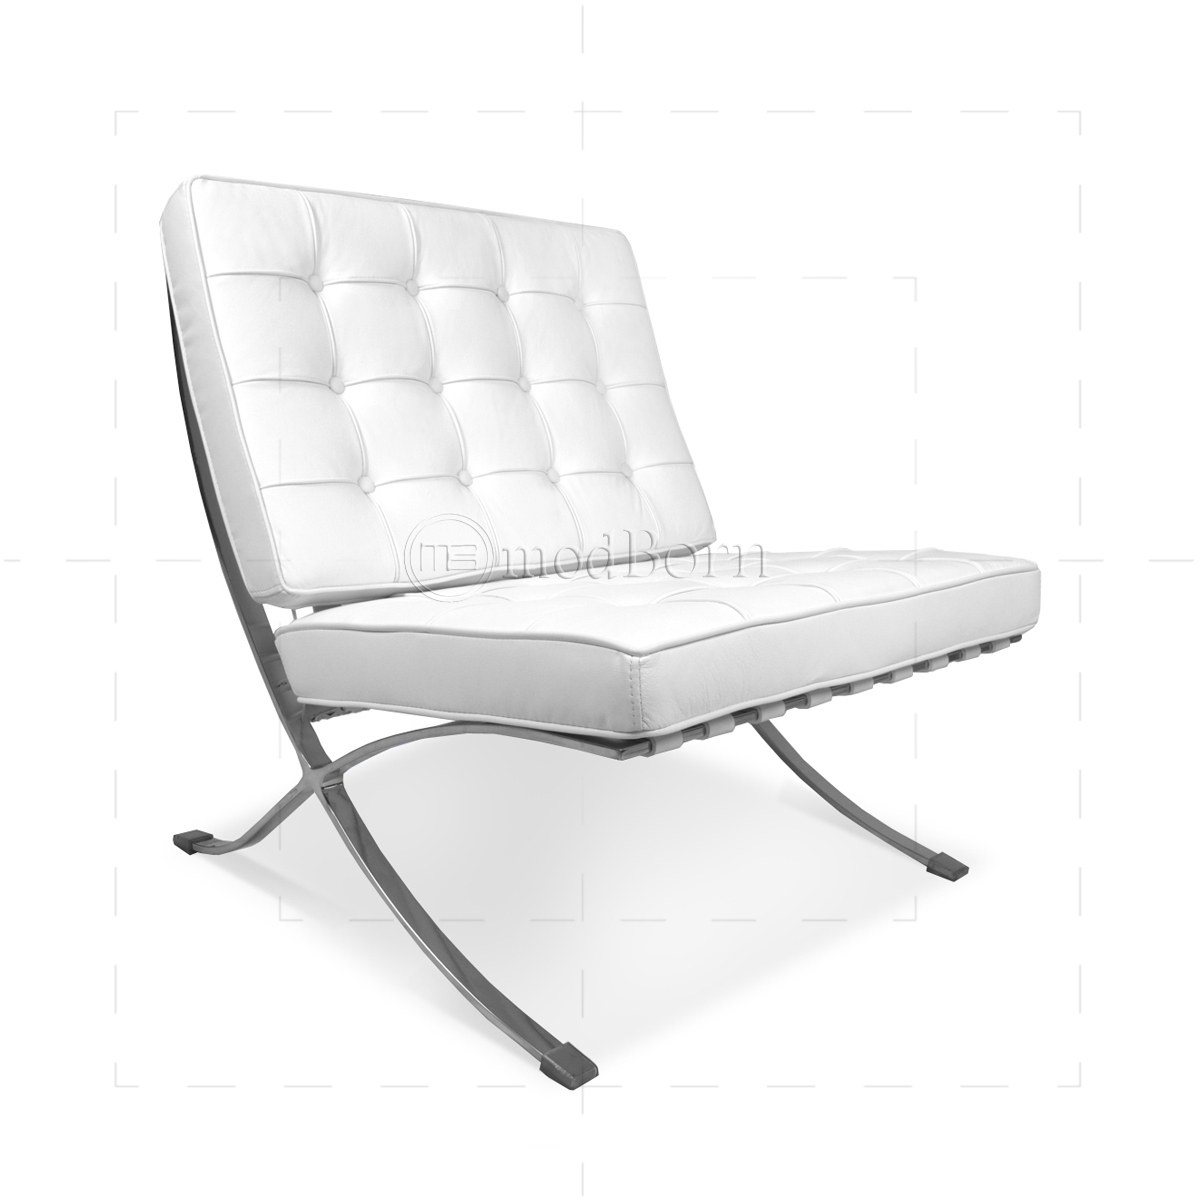 ludwig mies van der rohe barcelona style chair white leather replica. Black Bedroom Furniture Sets. Home Design Ideas